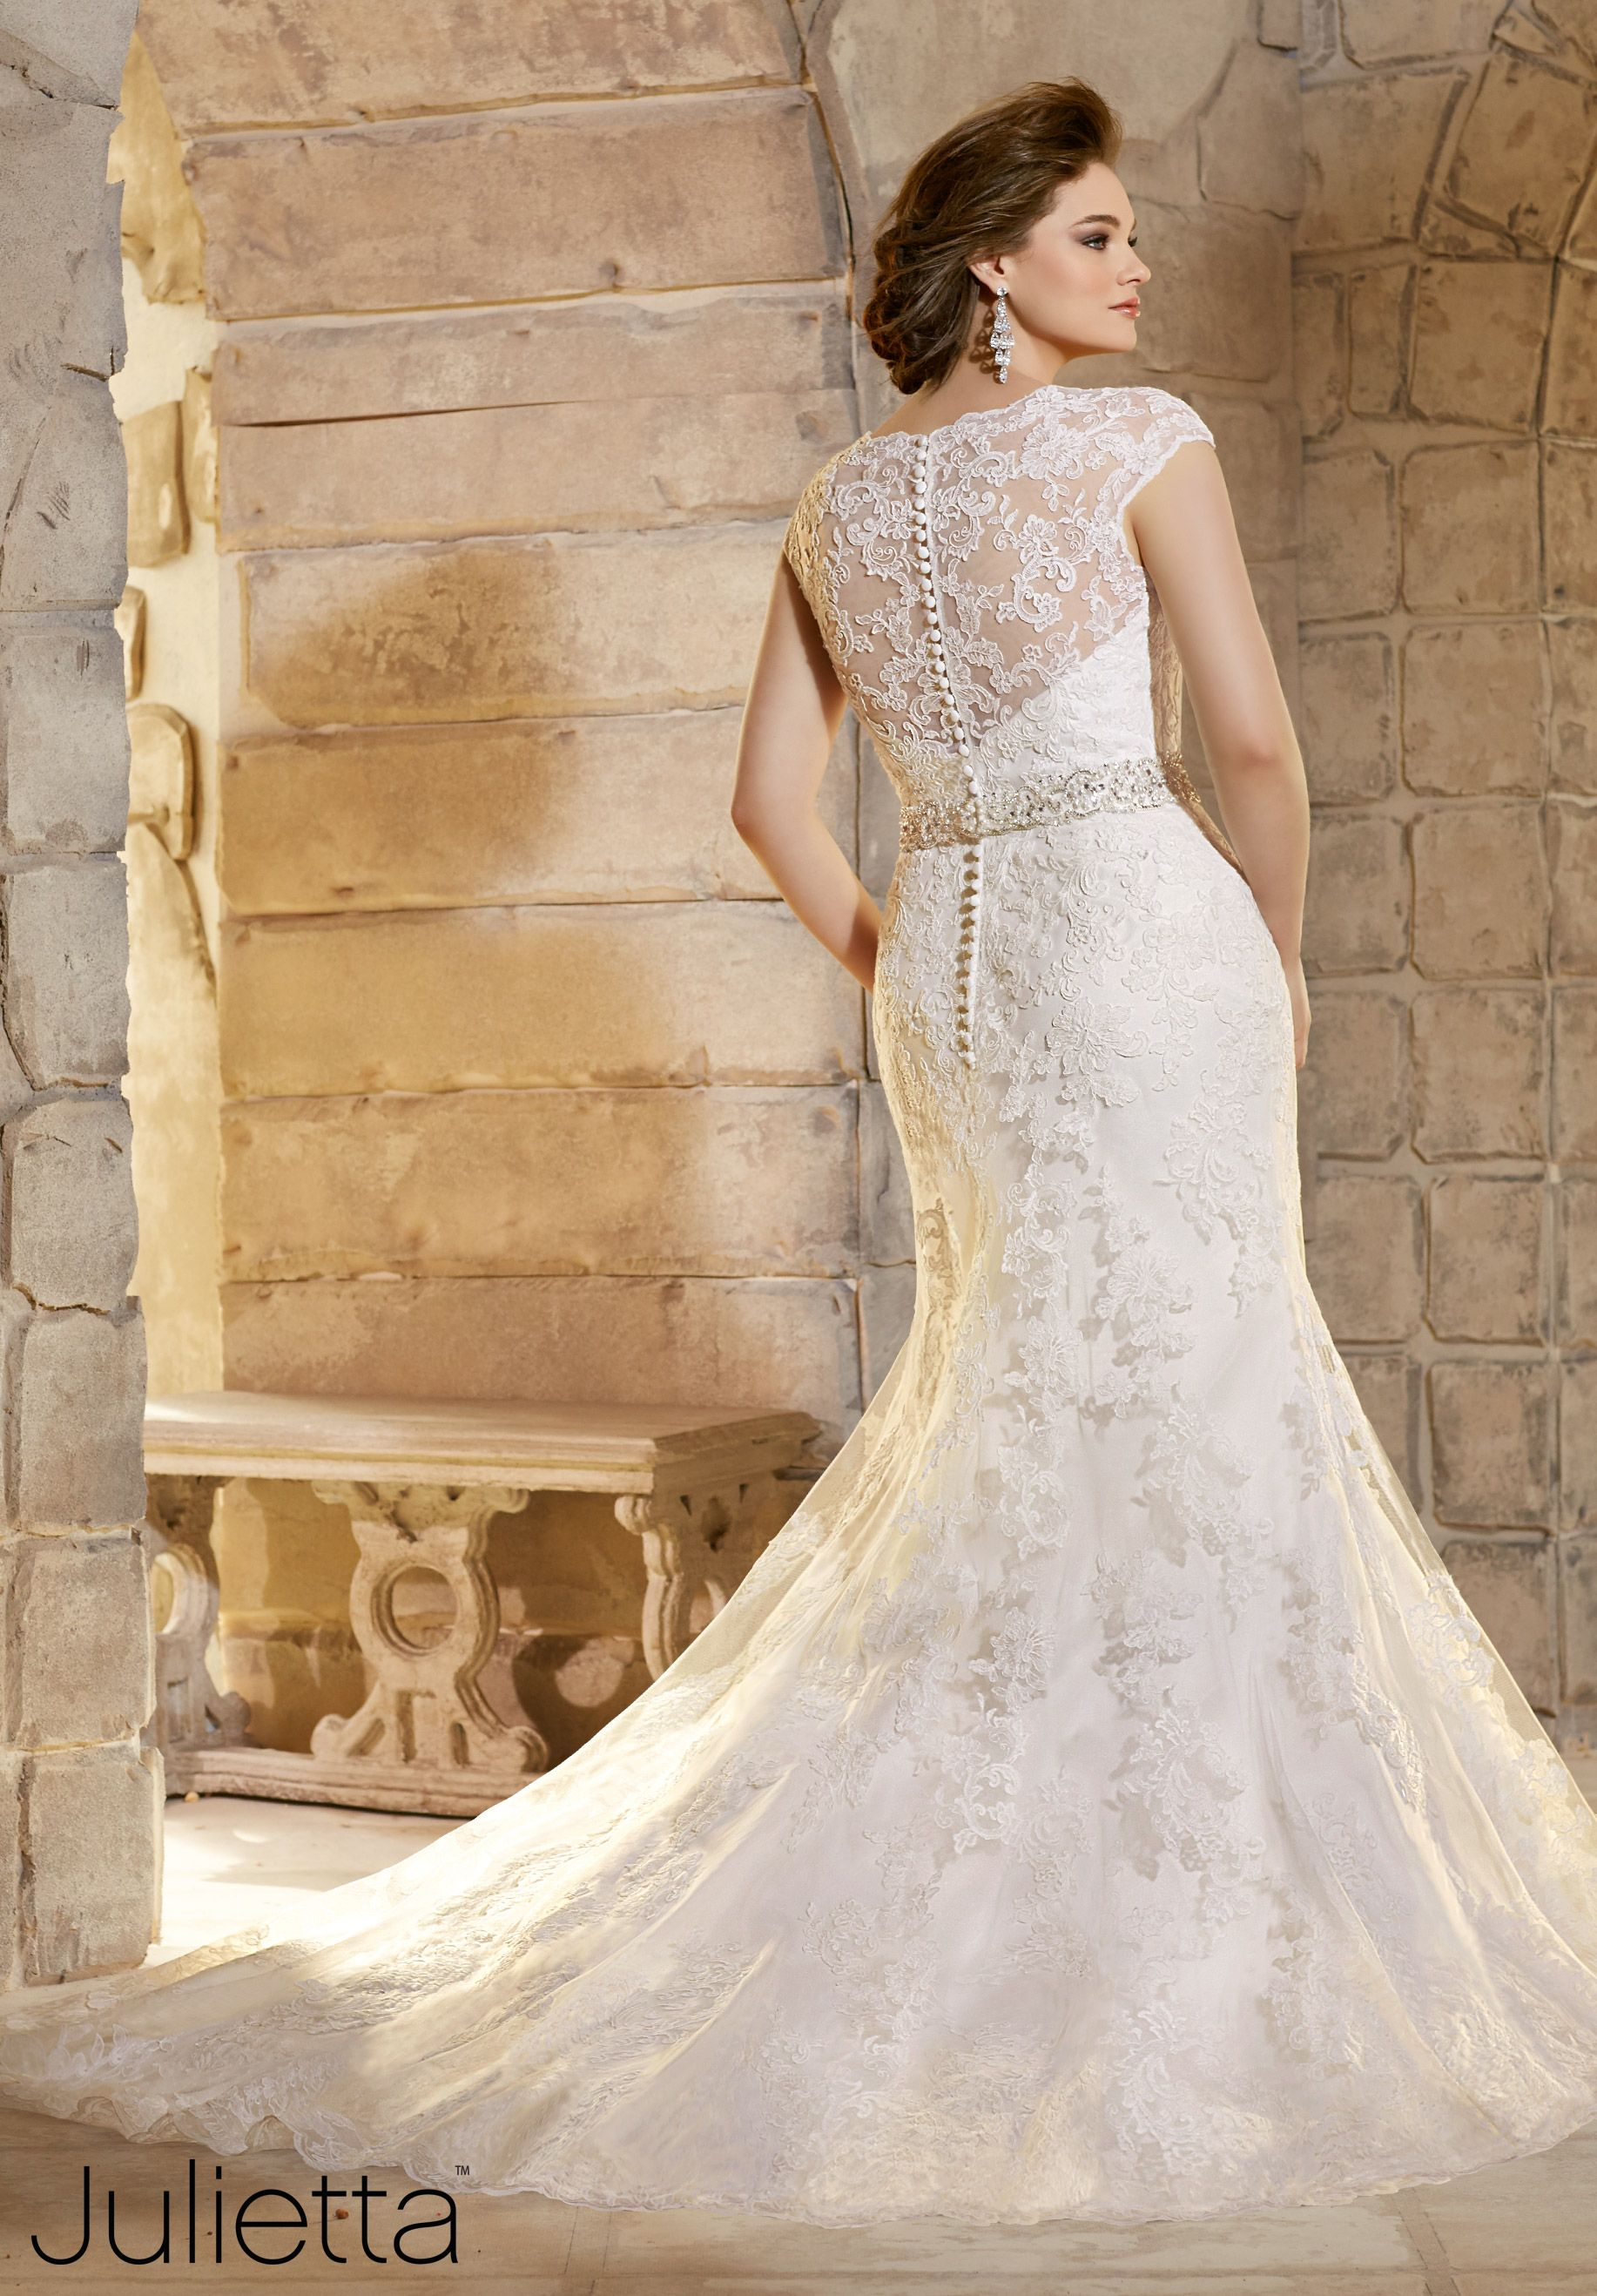 Plus size wedding dress embroidered appliques on net with wide